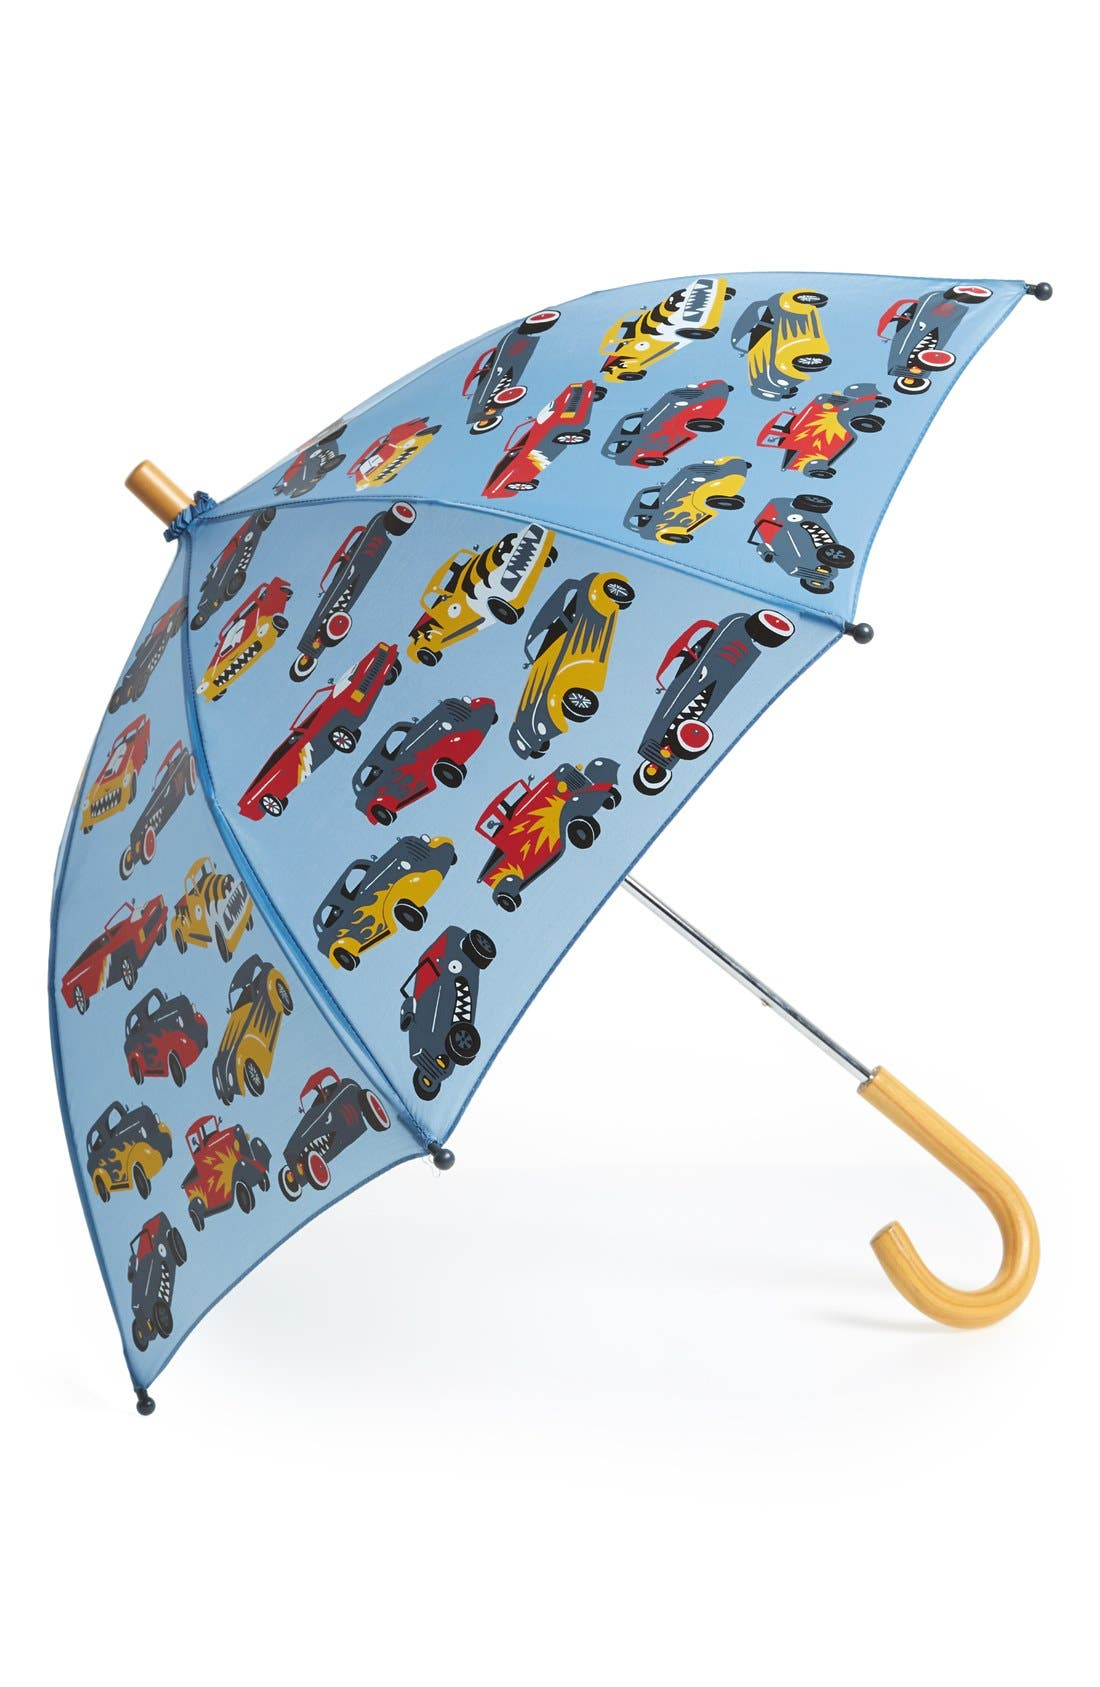 Alternate Image 1 Selected - Hatley 'Hot Rods' Print Umbrella (Kids)